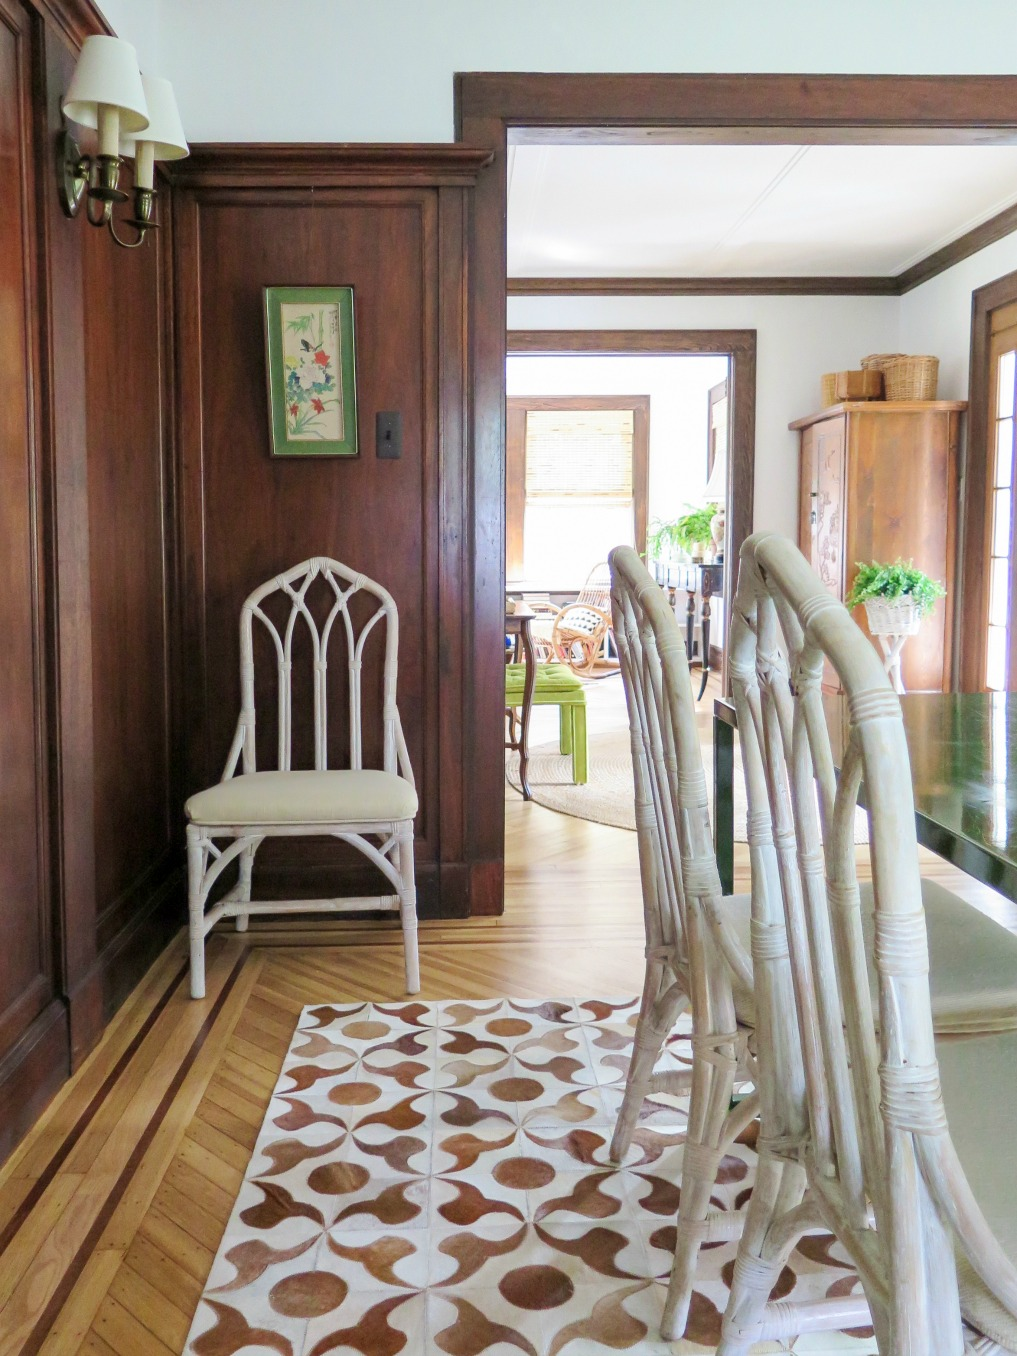 White bamboo chairs and a cowhide rug in the dining room of this 1920s home